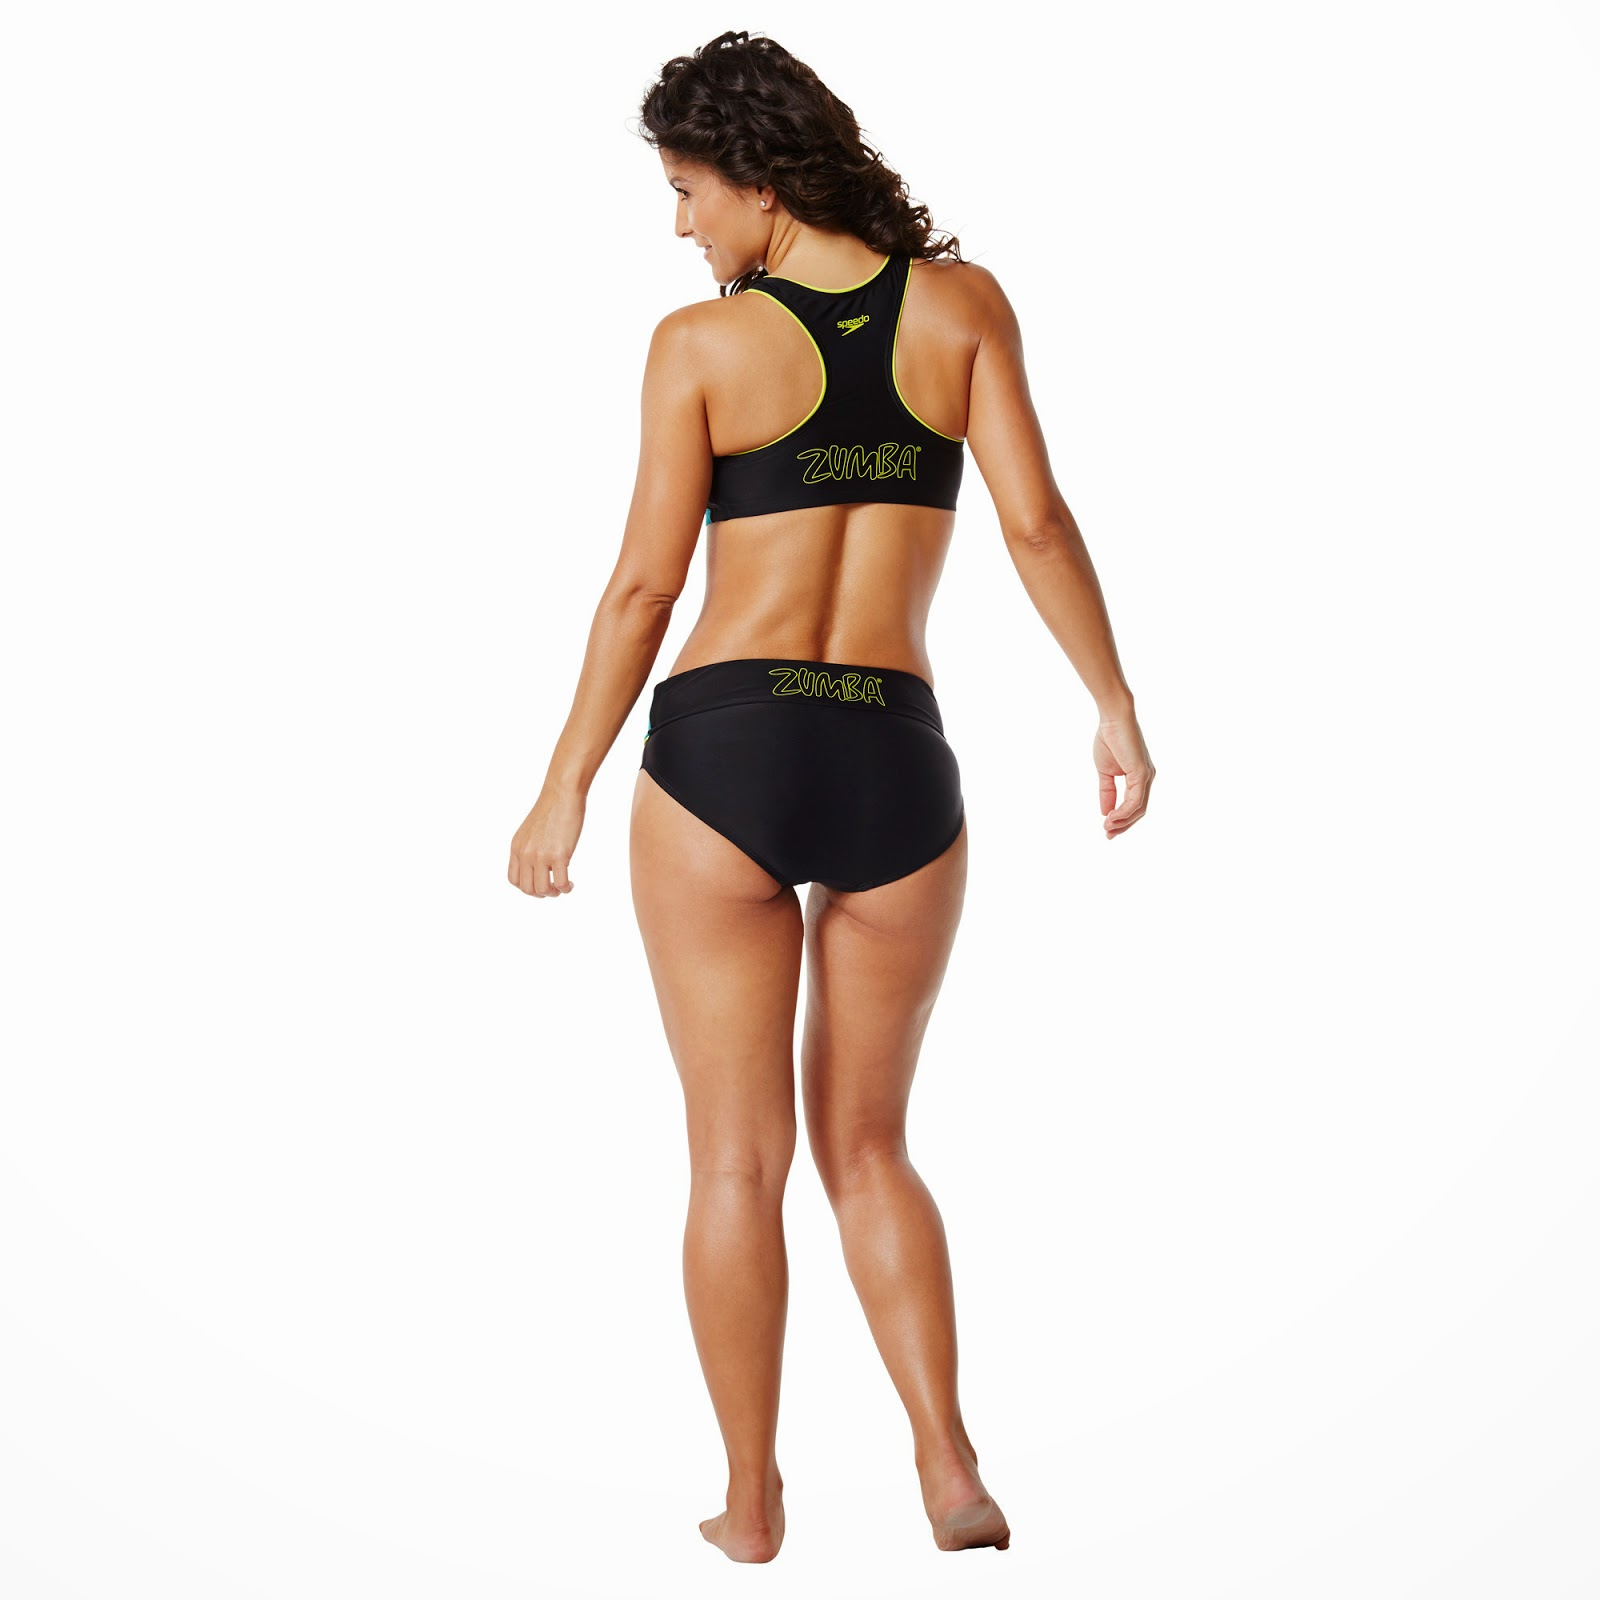 http://www.zumba.com/en-US/store-zin/US/product/rock-with-me-racerback-two-piece-set?color=Black